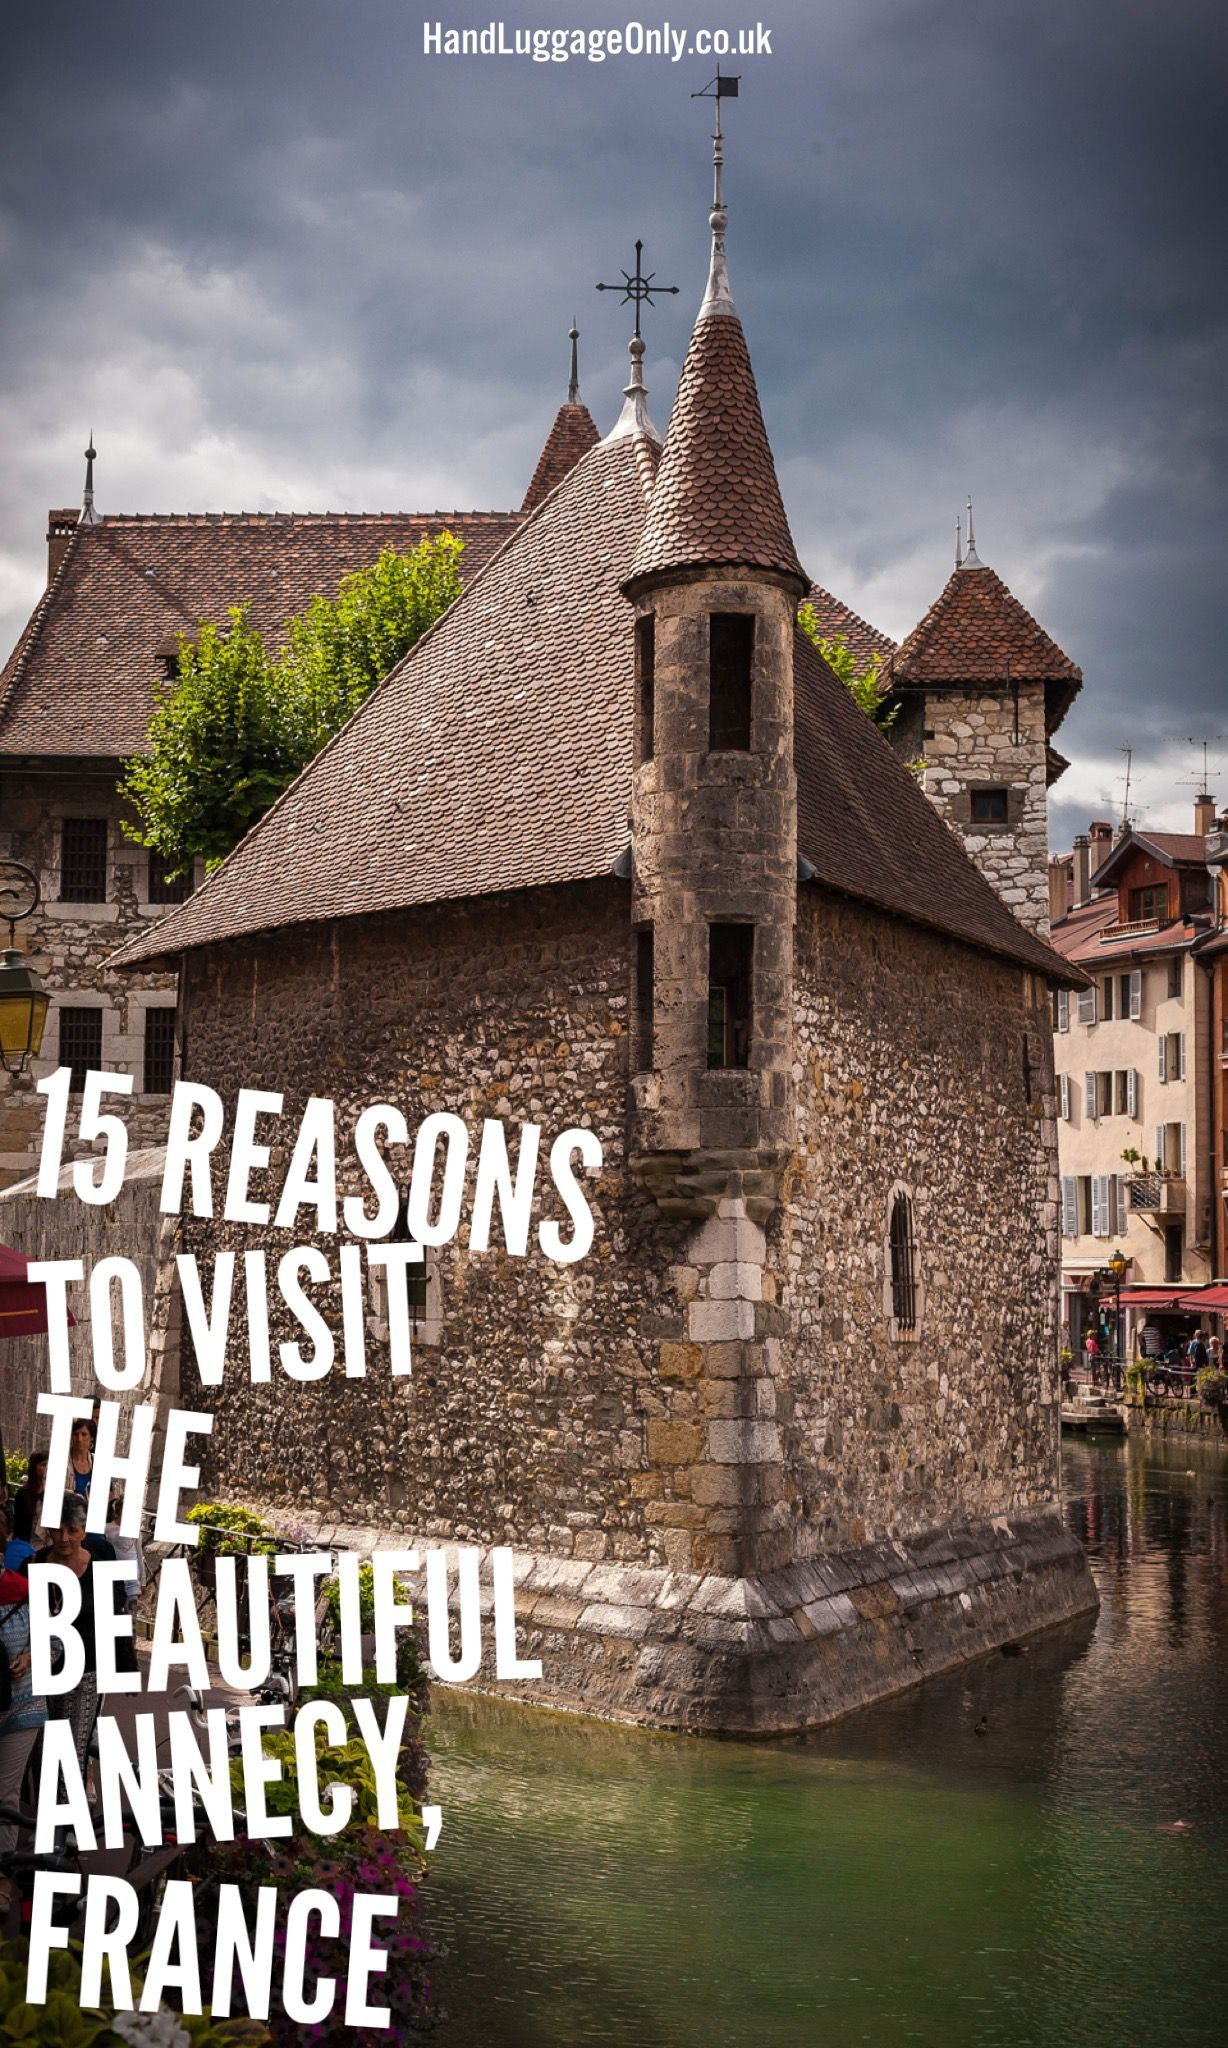 15 Reasons Why You Need To Visit Annecy In France! - Hand Luggage Only - Travel, Food & Photography Blog